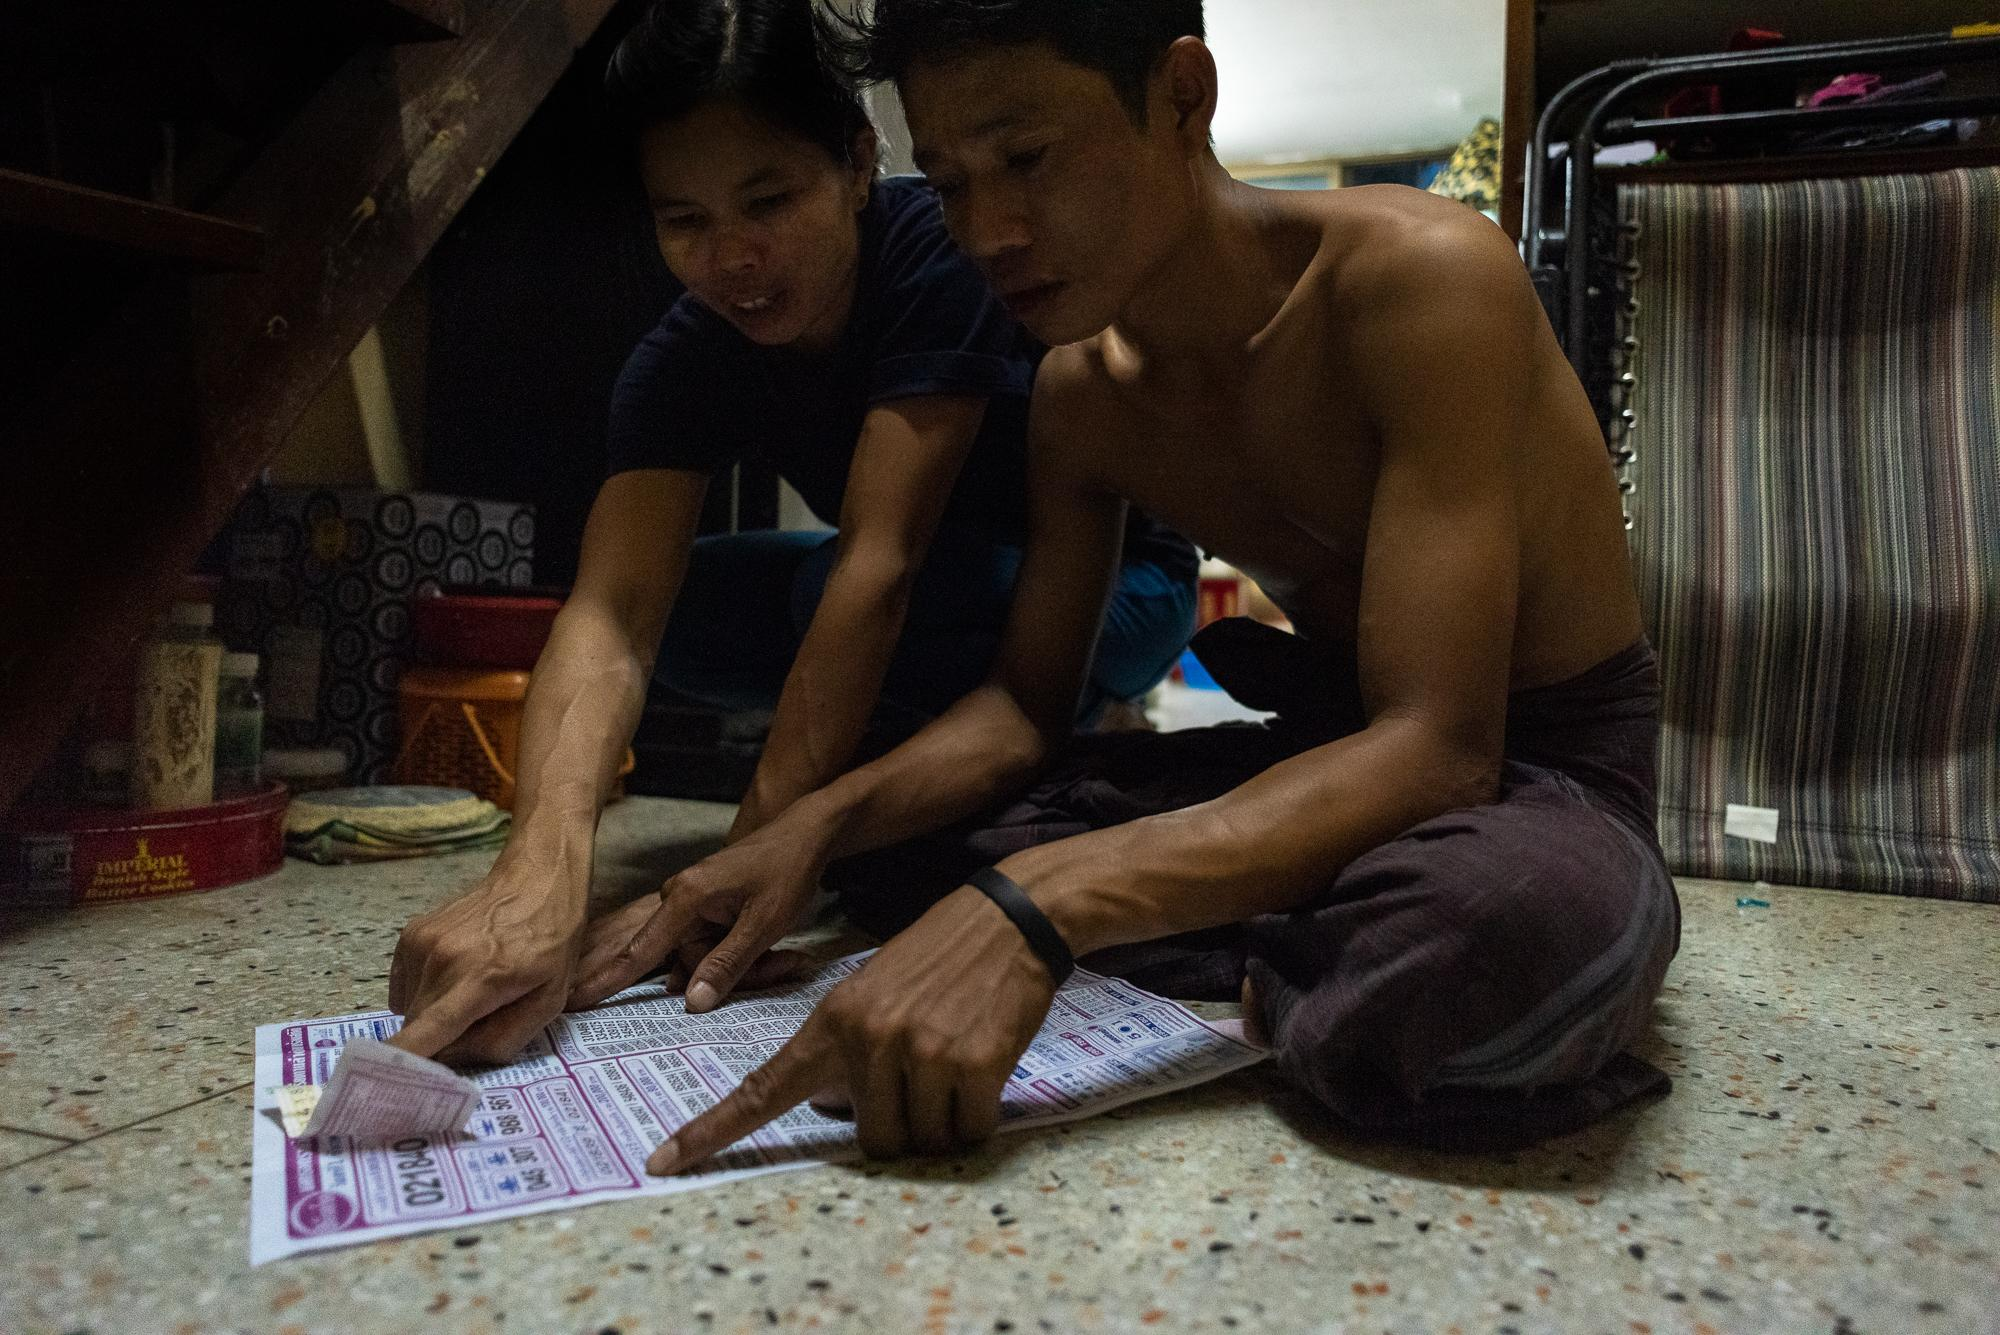 BANGKOK, THAILAND – DECEMBER 1, 2018: Zaw Min and his wife checking results of Thai lottery. They allocate a budget from their wages to play lottery every month. They have won prizes a few times after living in Thailand for two years.